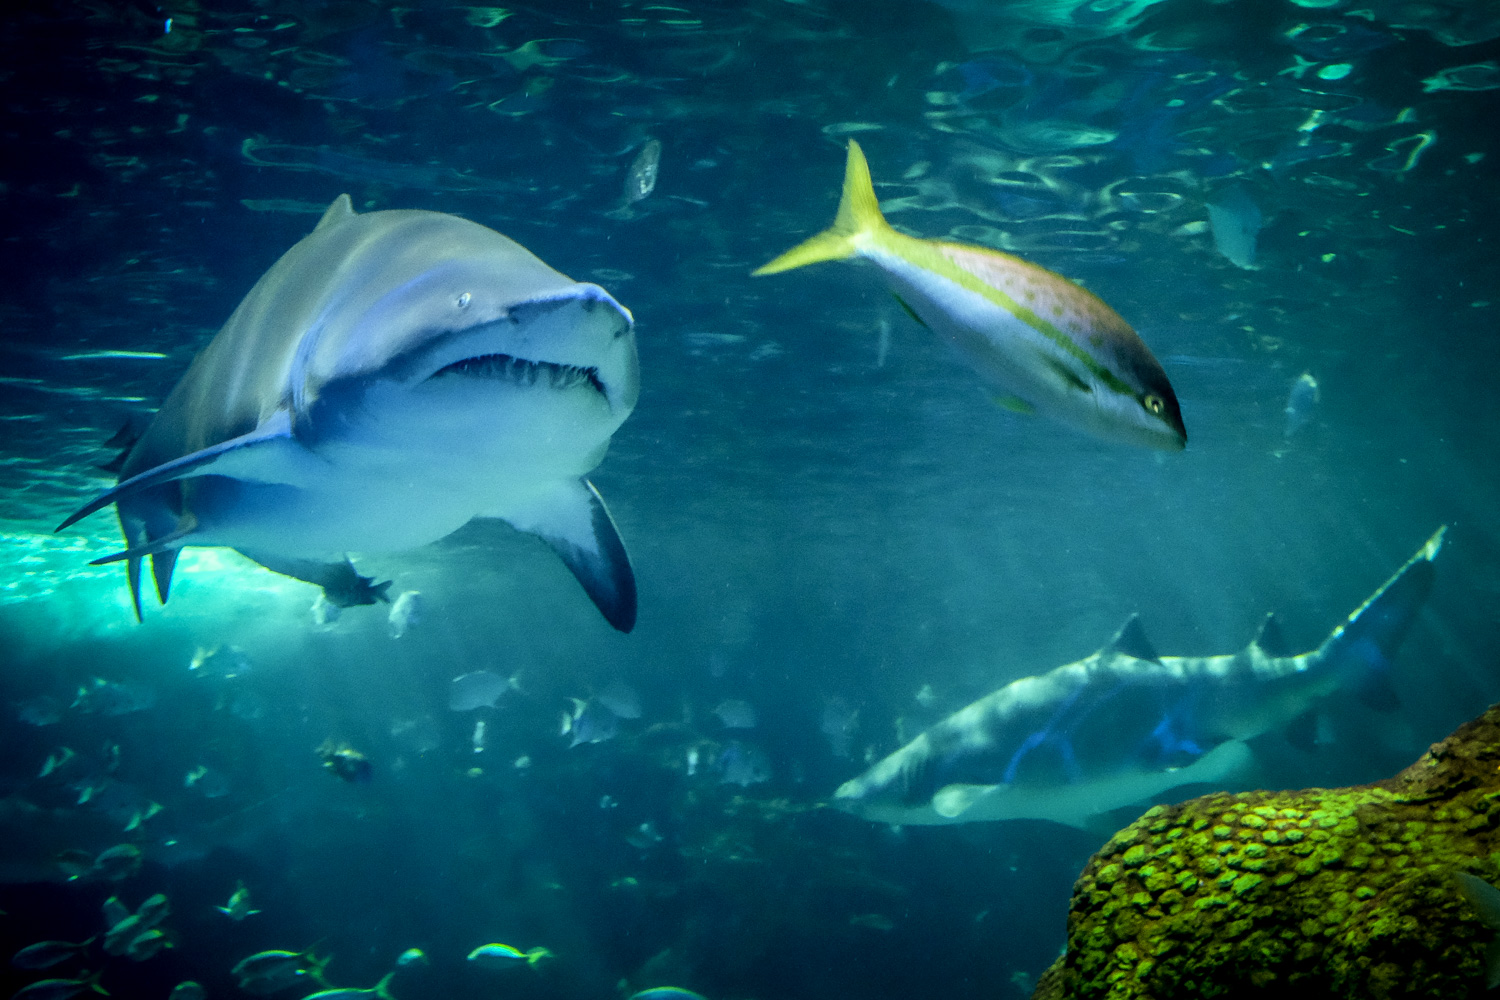 Photo of a shark chasing a fish. How to Take Clear and Creative Photos at Aquariums